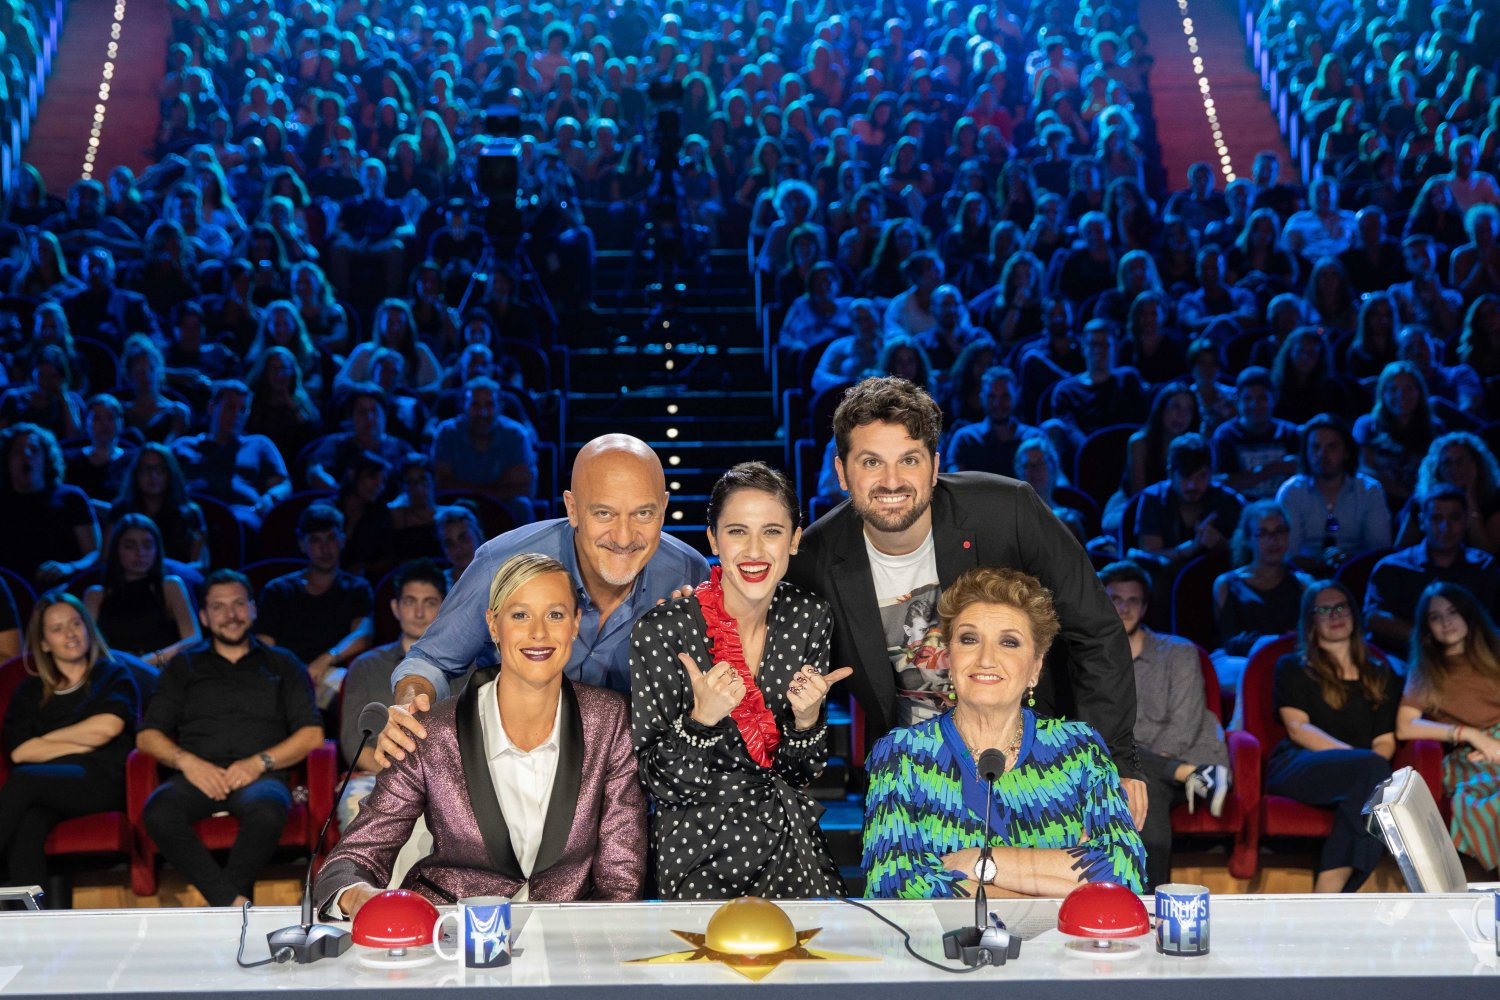 Italia's Got Talent su TV8 e Sky Uno con le new entry Pellegrini e Maionchi